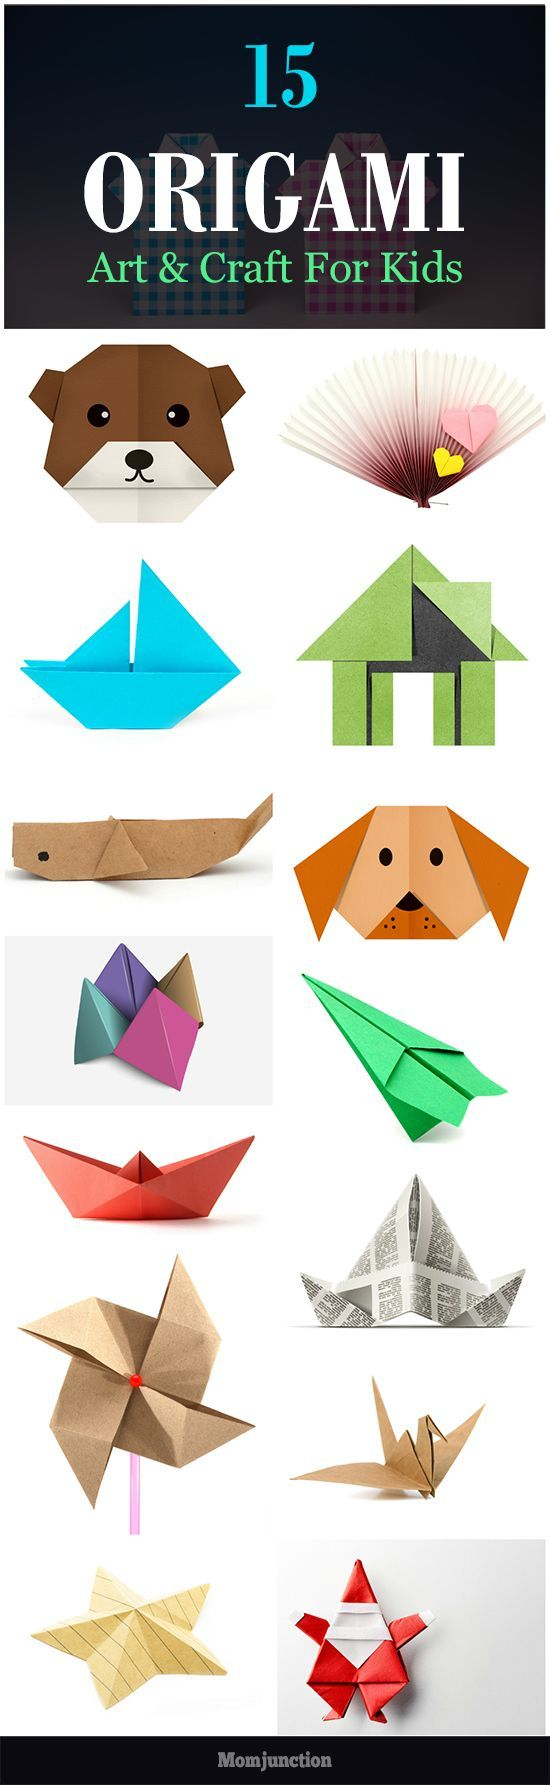 Origami Art Projects For Kids Top 15 Paper Folding Or Origami Crafts For Kids Everything For